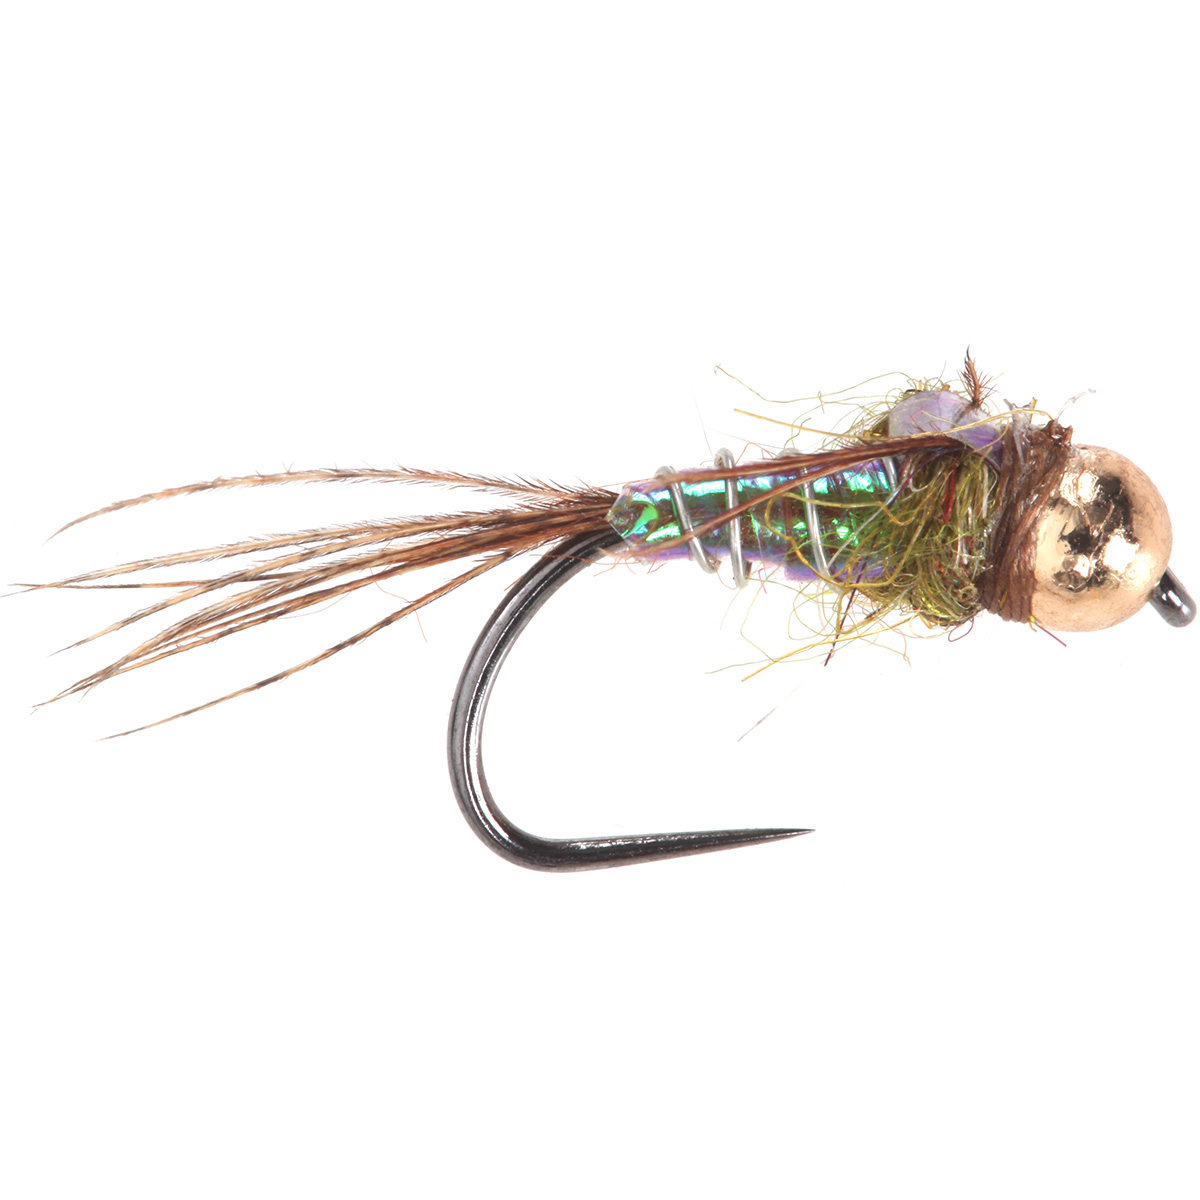 Lightening bug pearl tungsten beads nymphs fishing flies for Fly fishing nymphs